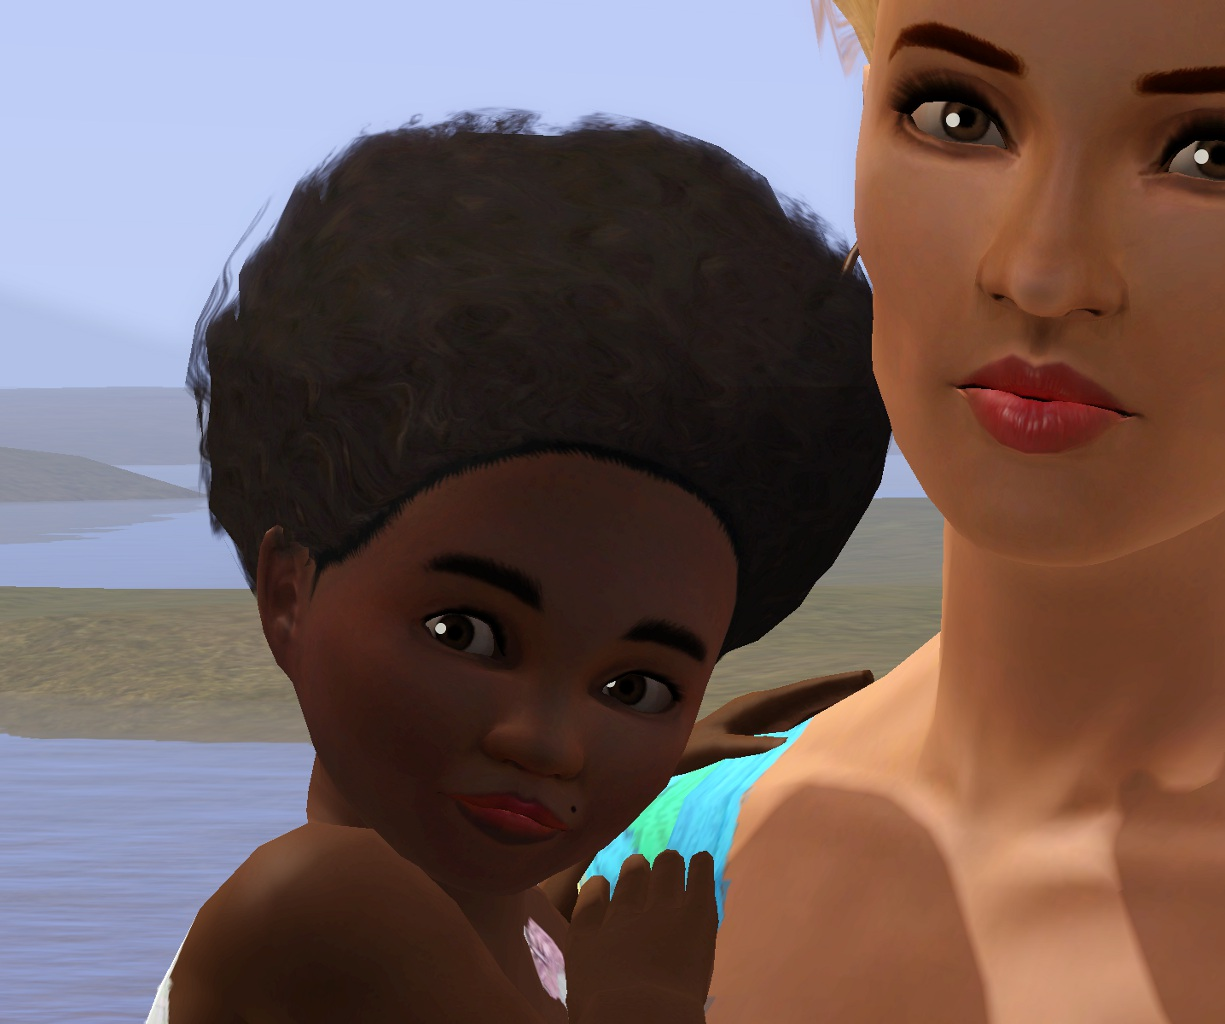 Mod The Sims Sims 3 Shop Halloween Hair As Afro Now